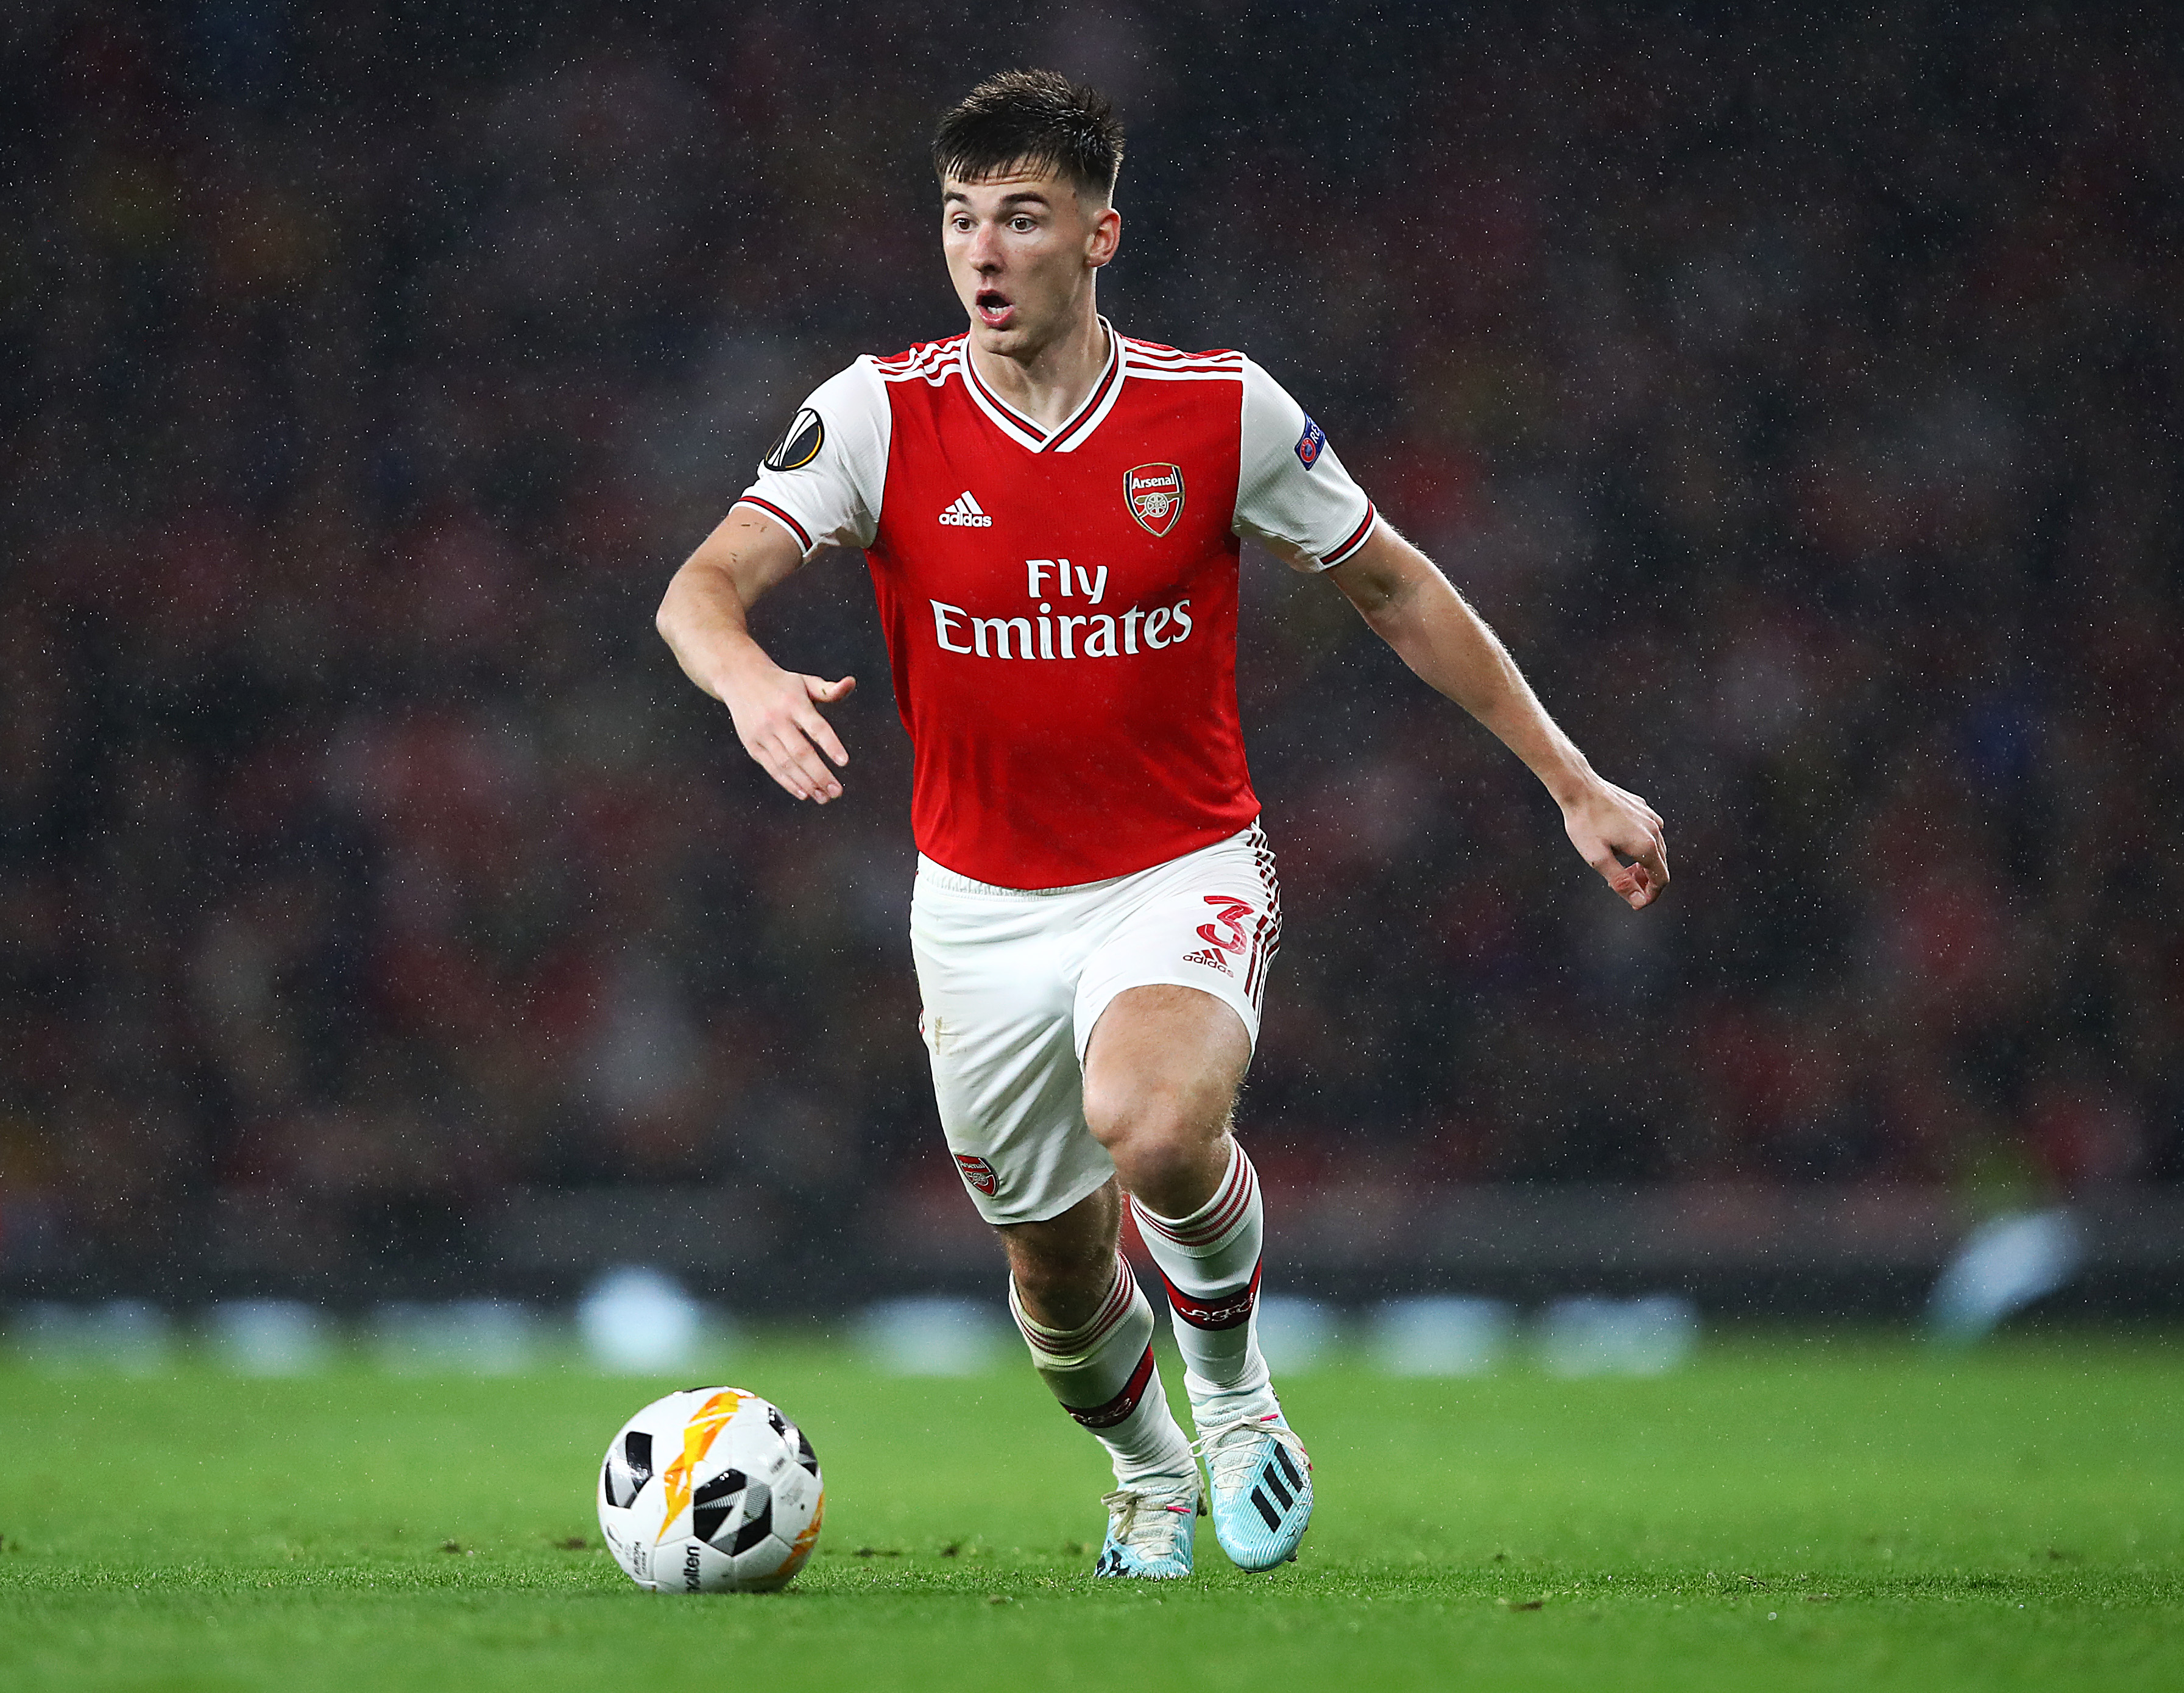 Arsenal might cash in on Tierney, who is seen in the photo, amid Leicester City interest